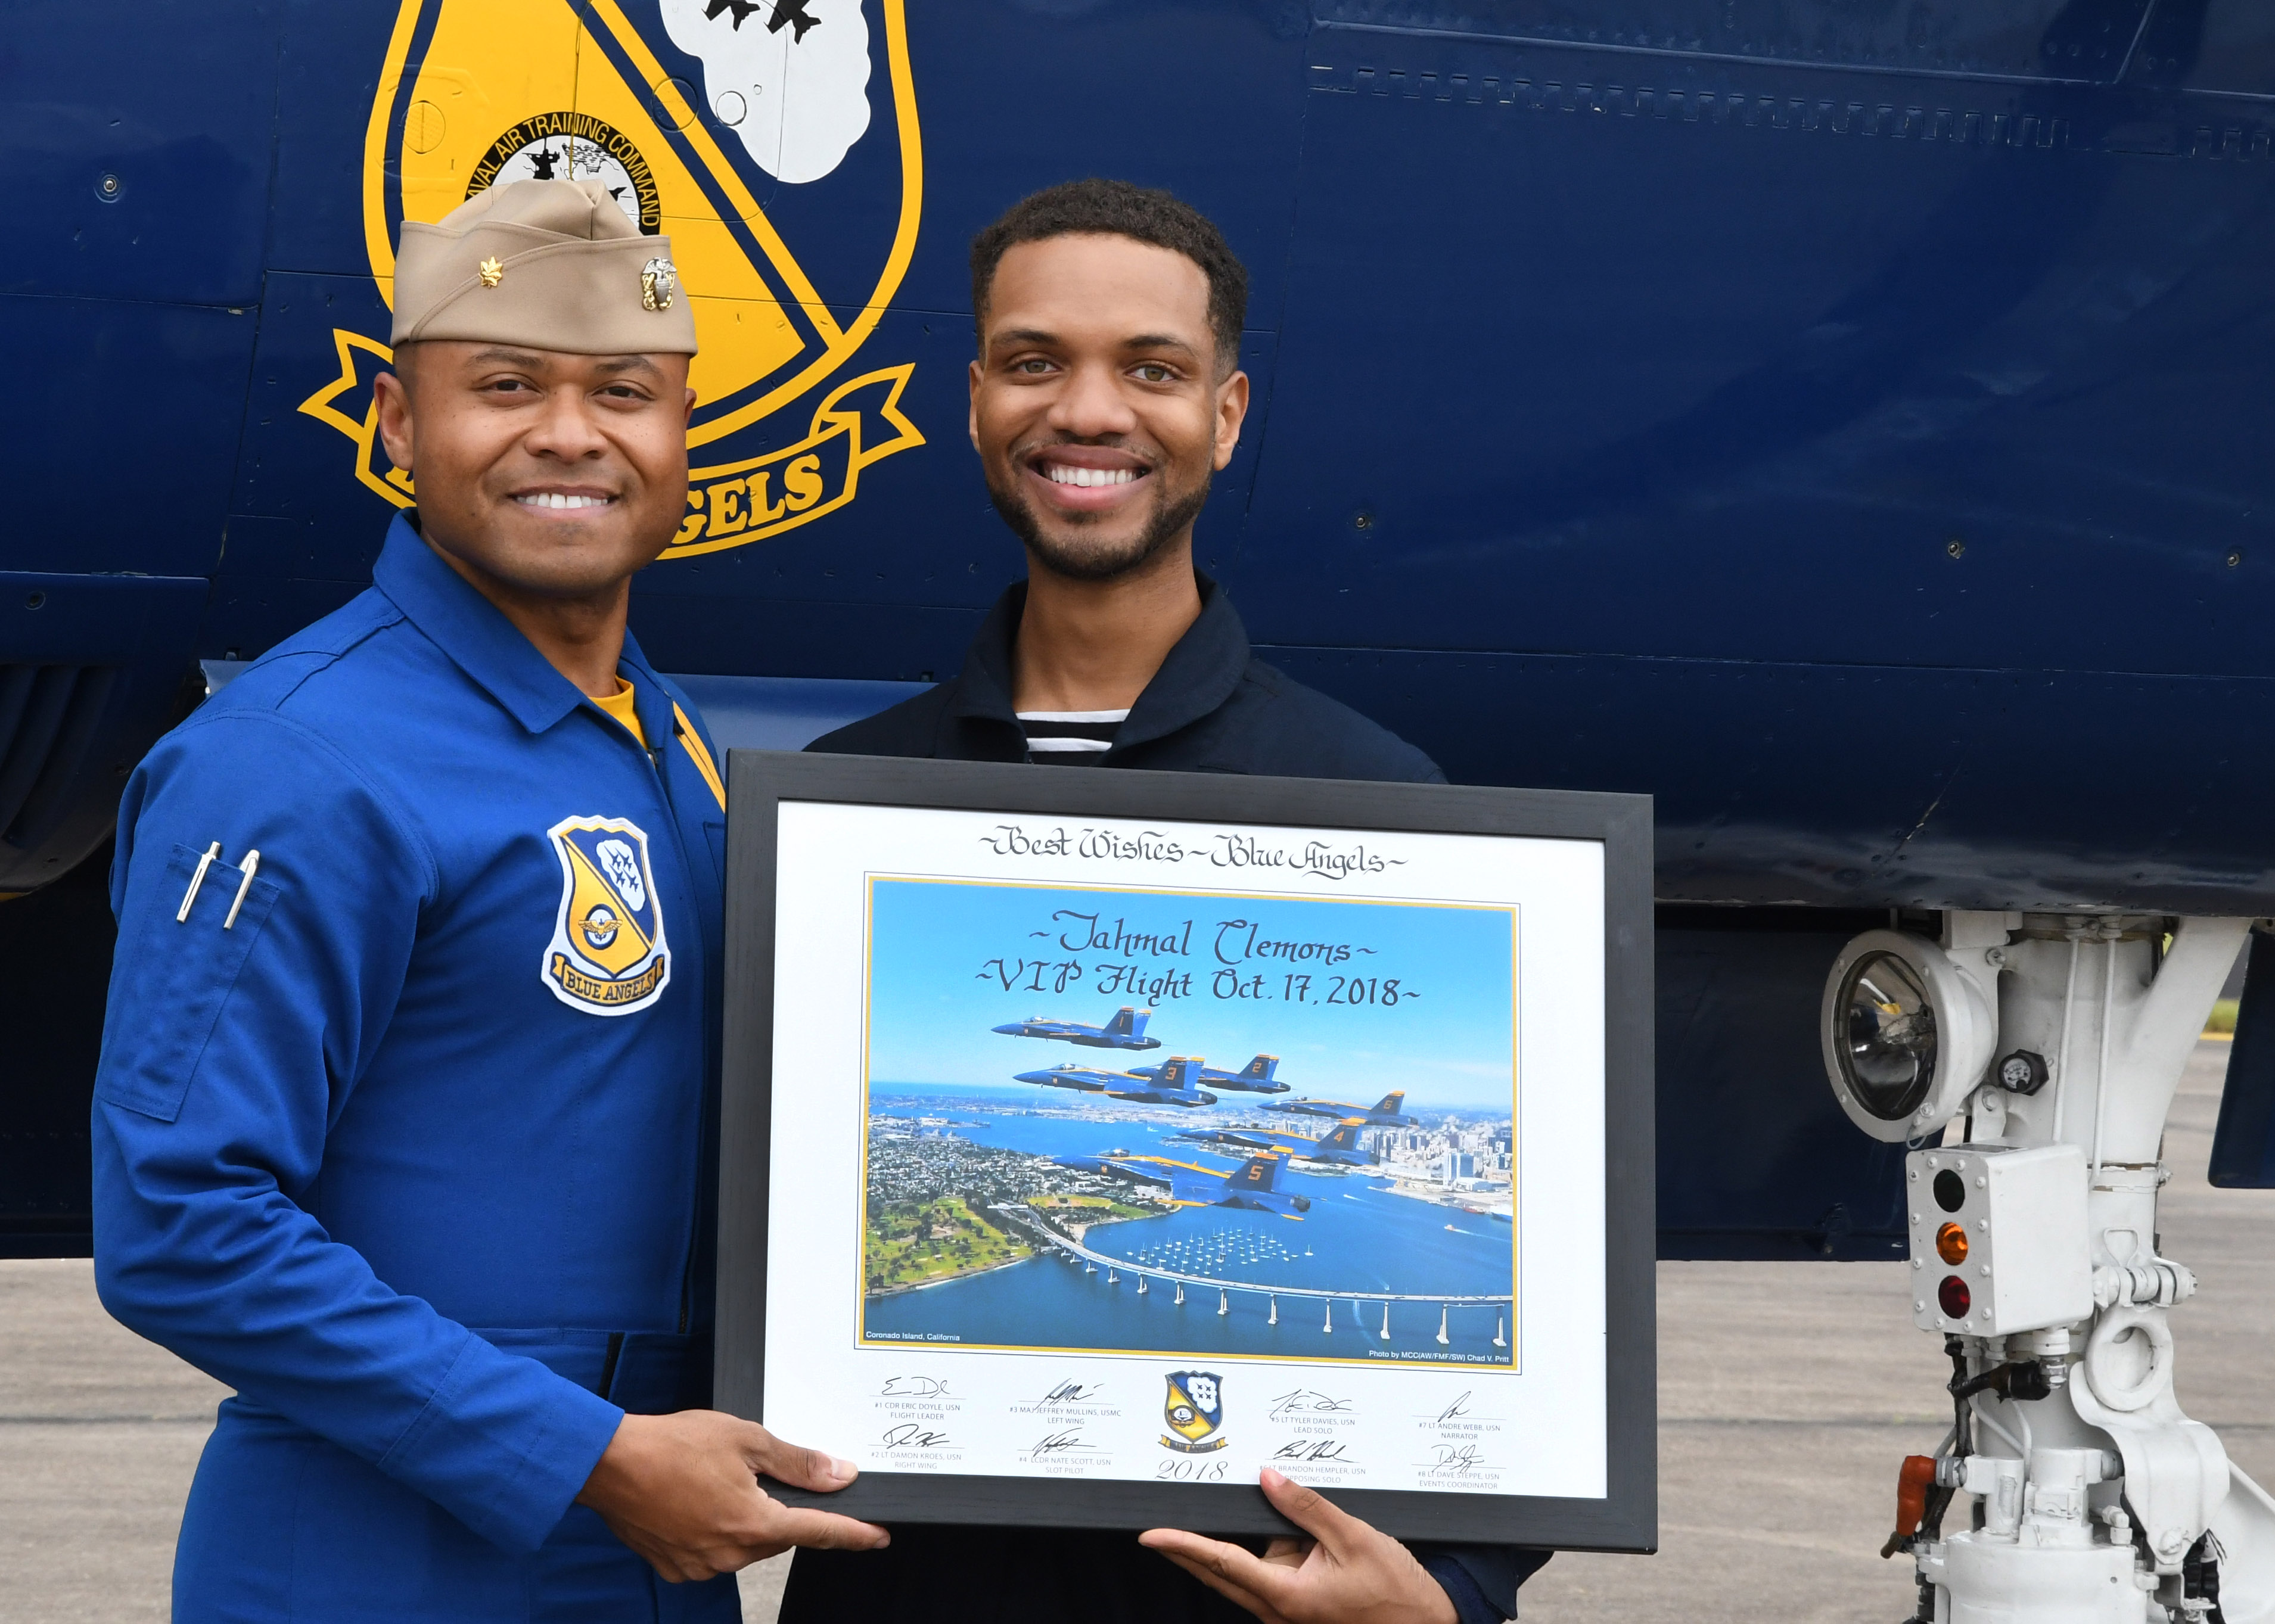 San Jacinto College's Clemons flies high with the Blue Angels